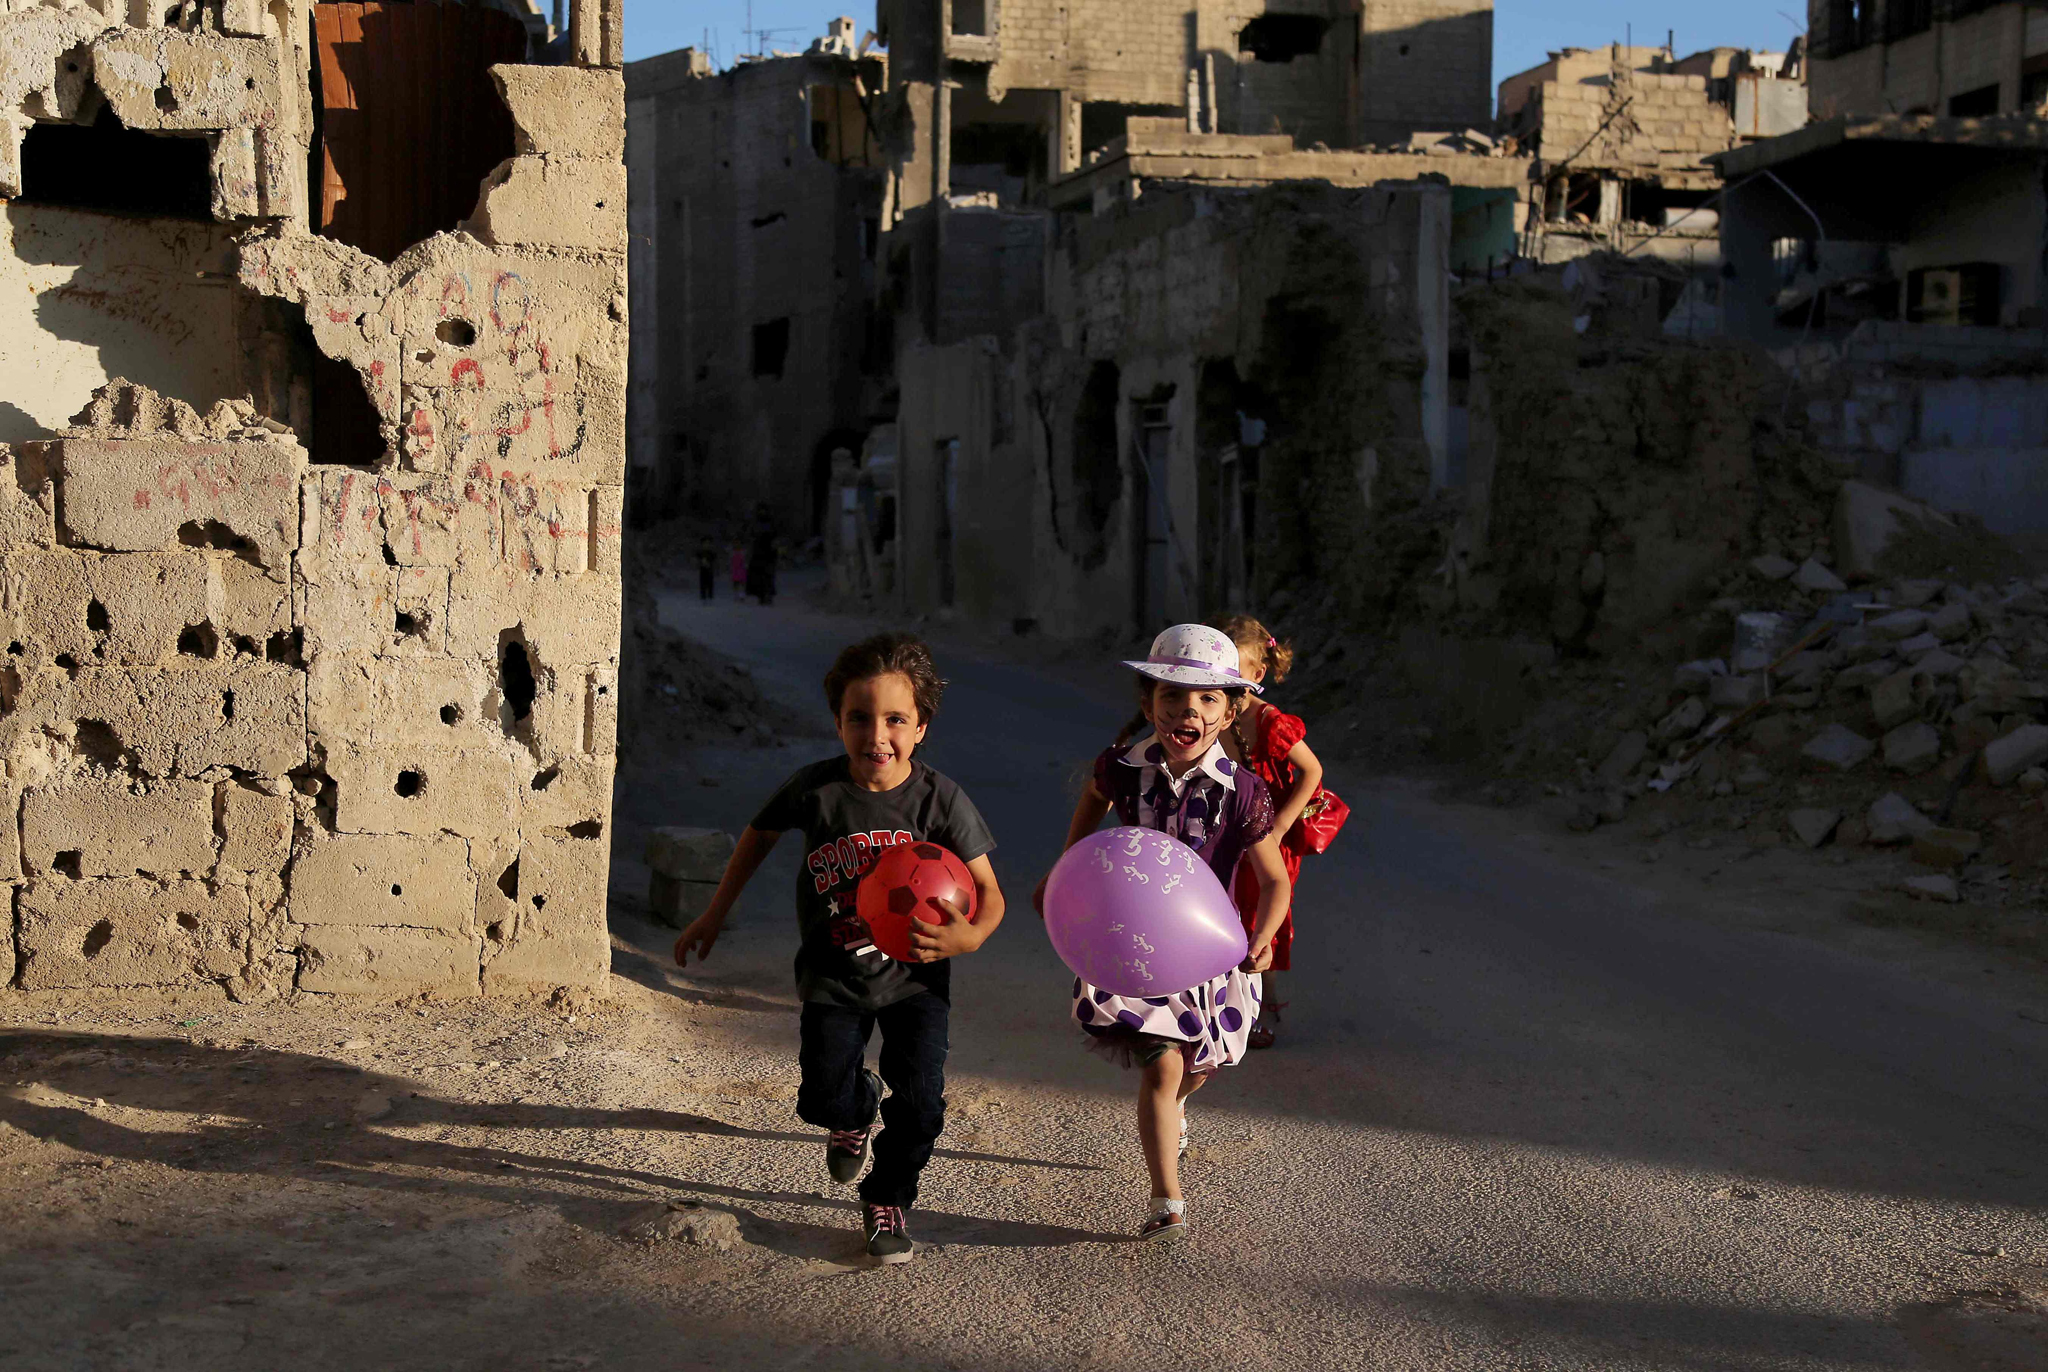 Syrian children run amidst heavily damaged buildings during an activity organised by a charity group in Jobar, a rebel-held district on the eastern outskirts of the capital Damascus